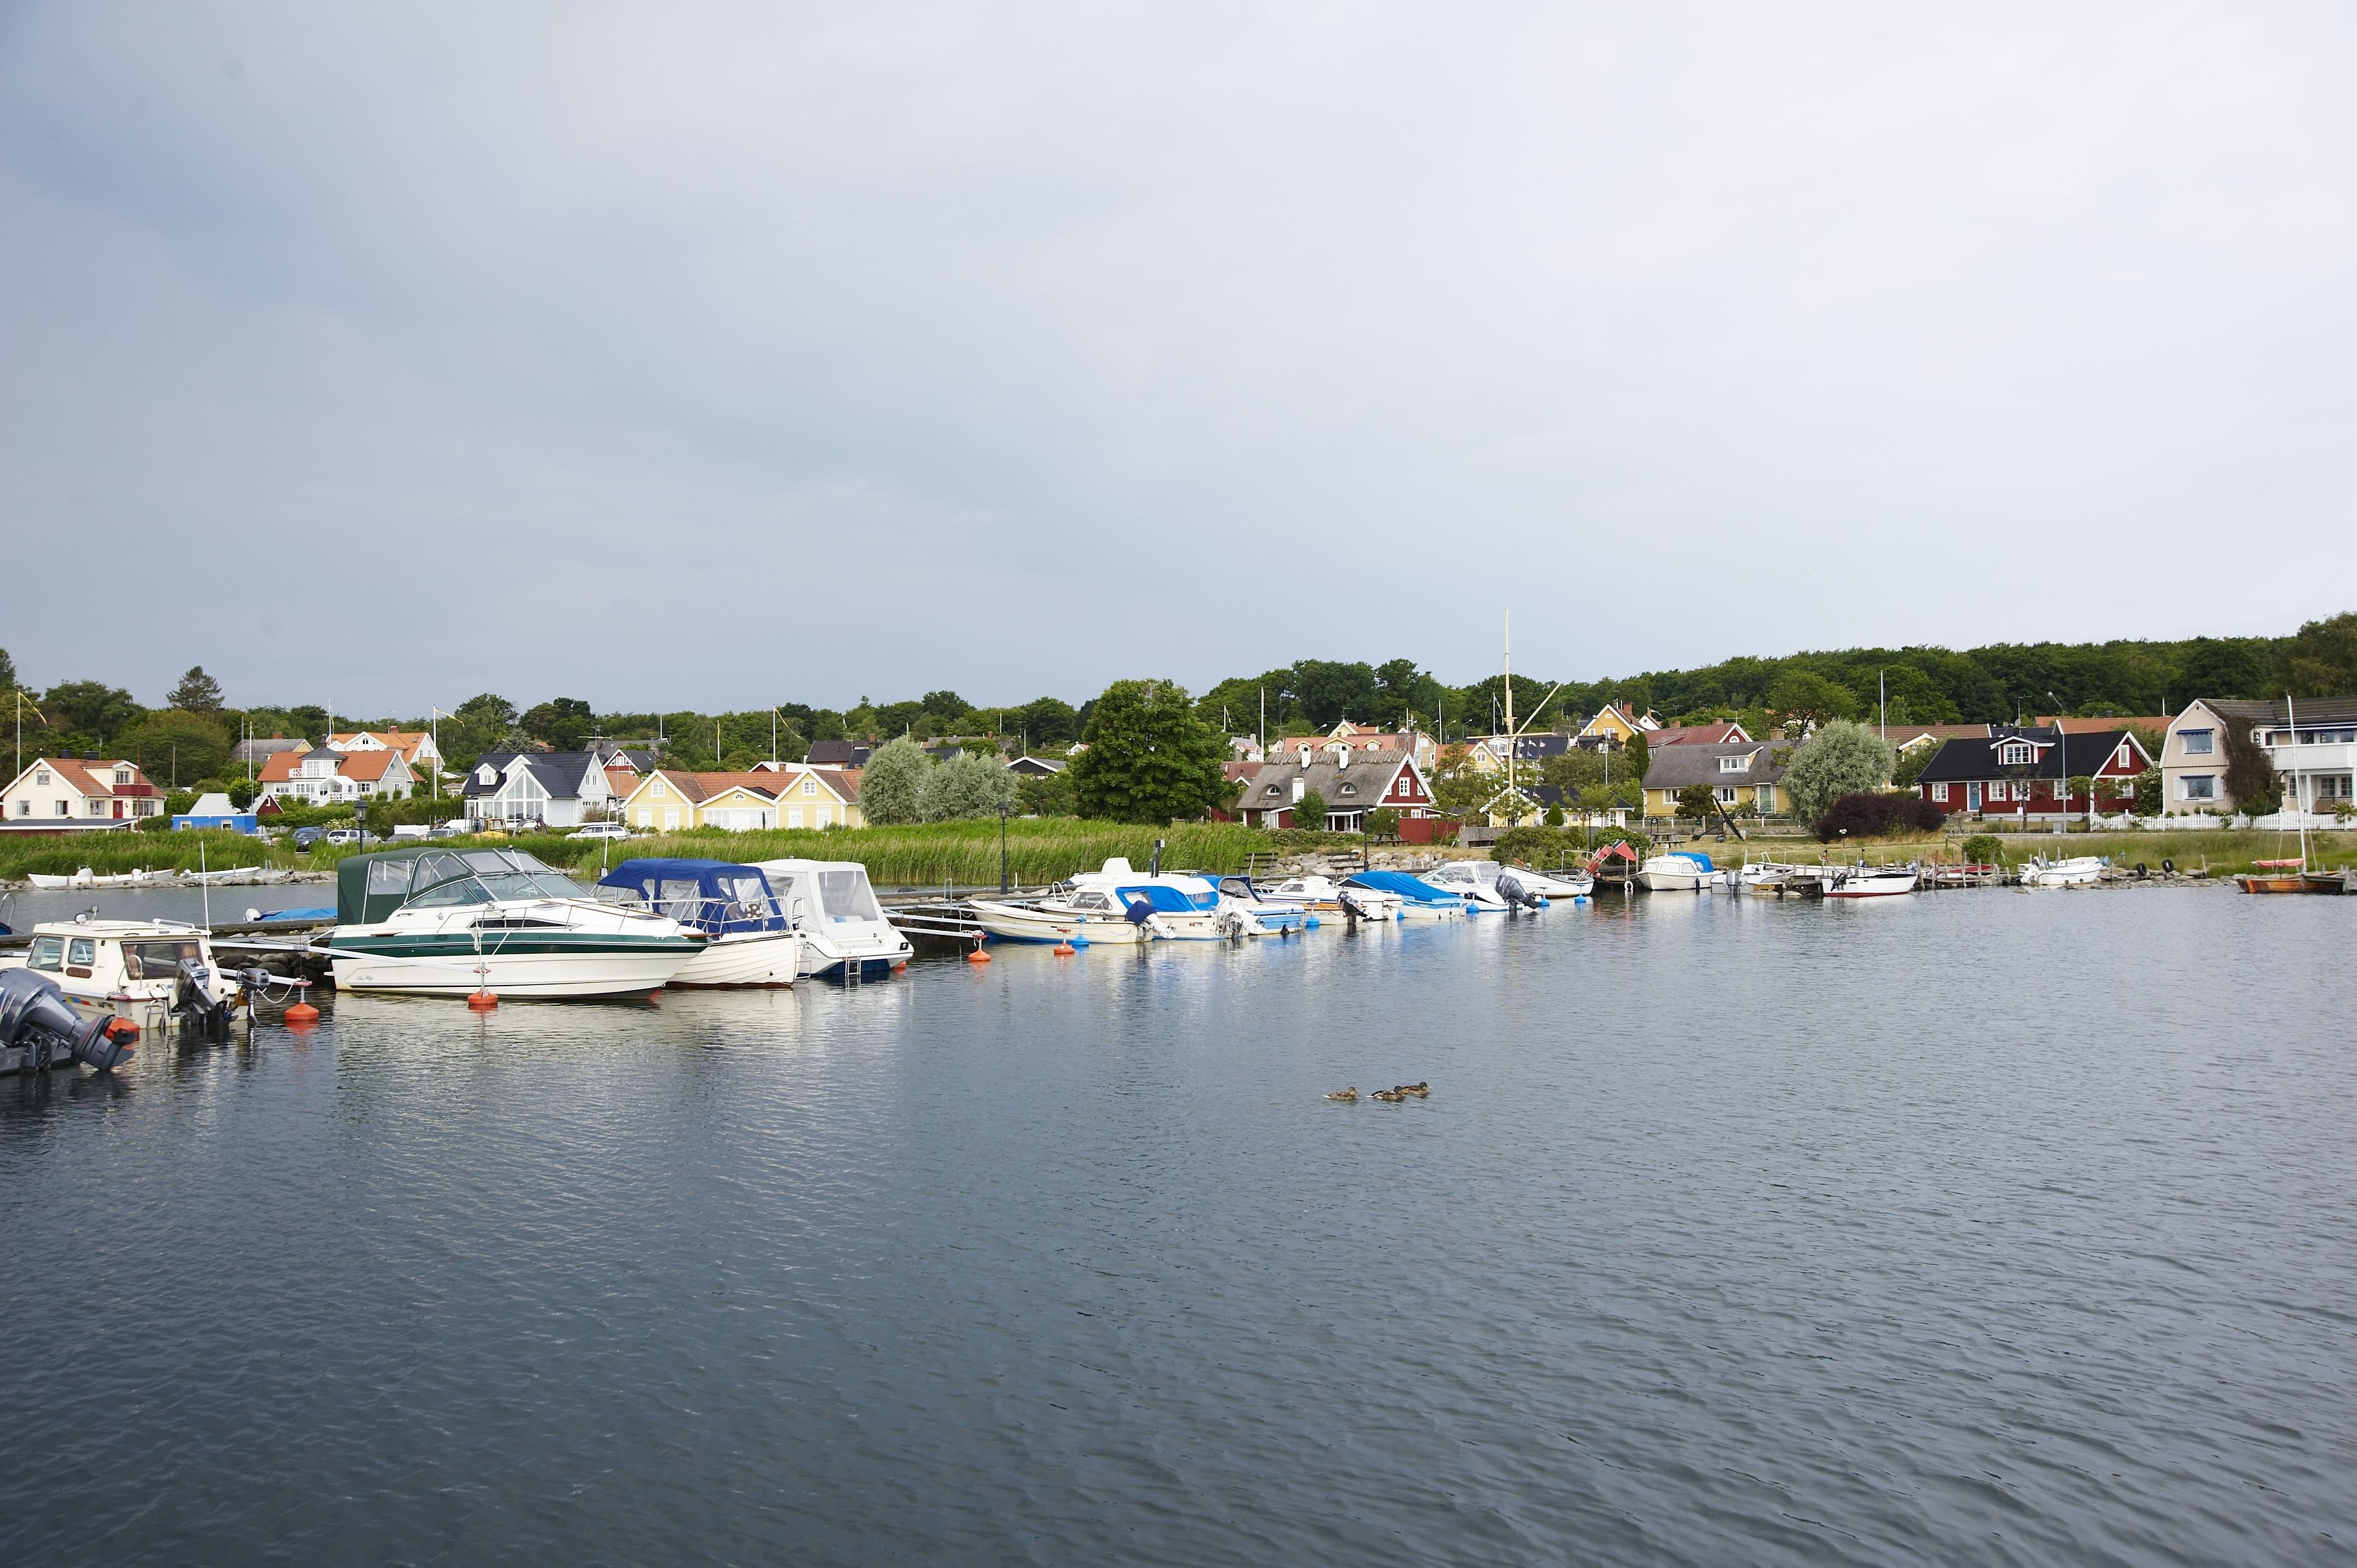 Fishing villages on Listerlandet